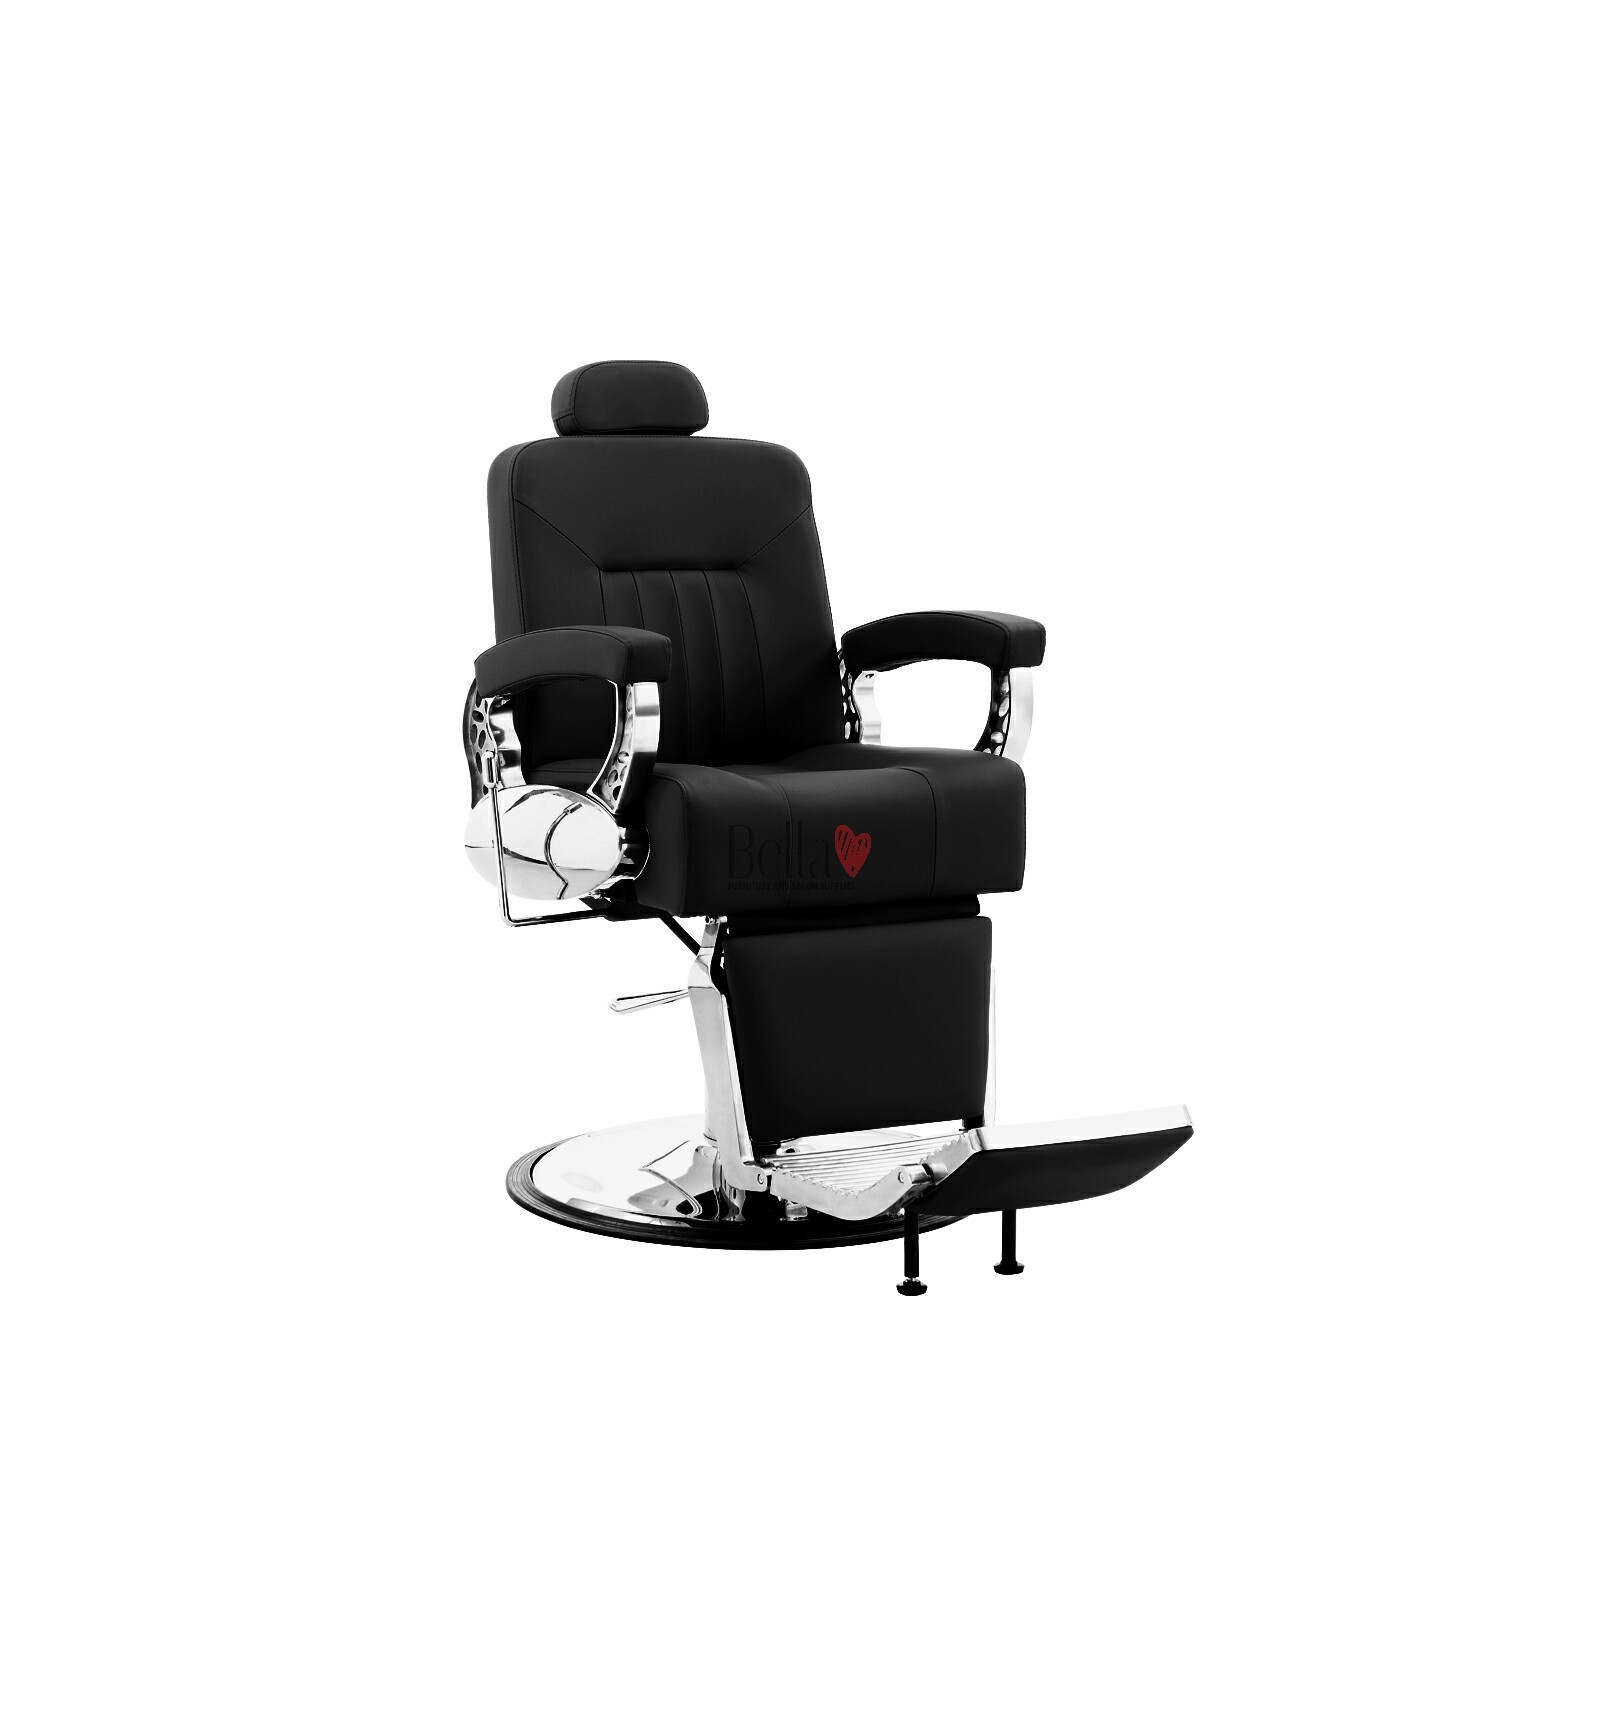 mobile barber chair riser stand easy professional ireland chairs for sale